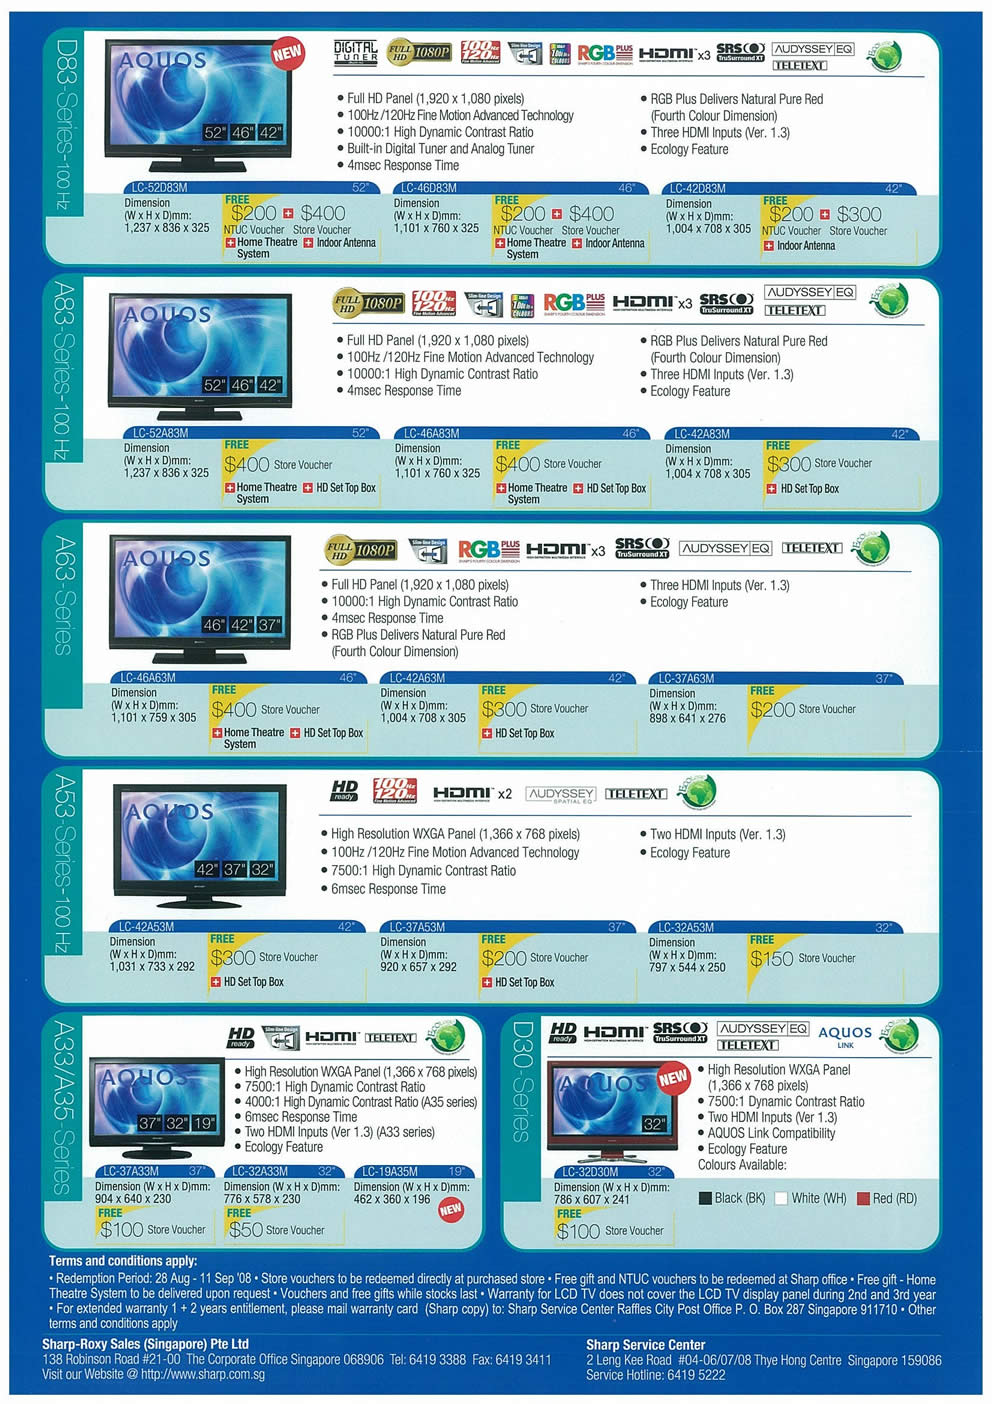 Comex 2008 price list image brochure of Sharp Aquos LCD TV Page 2